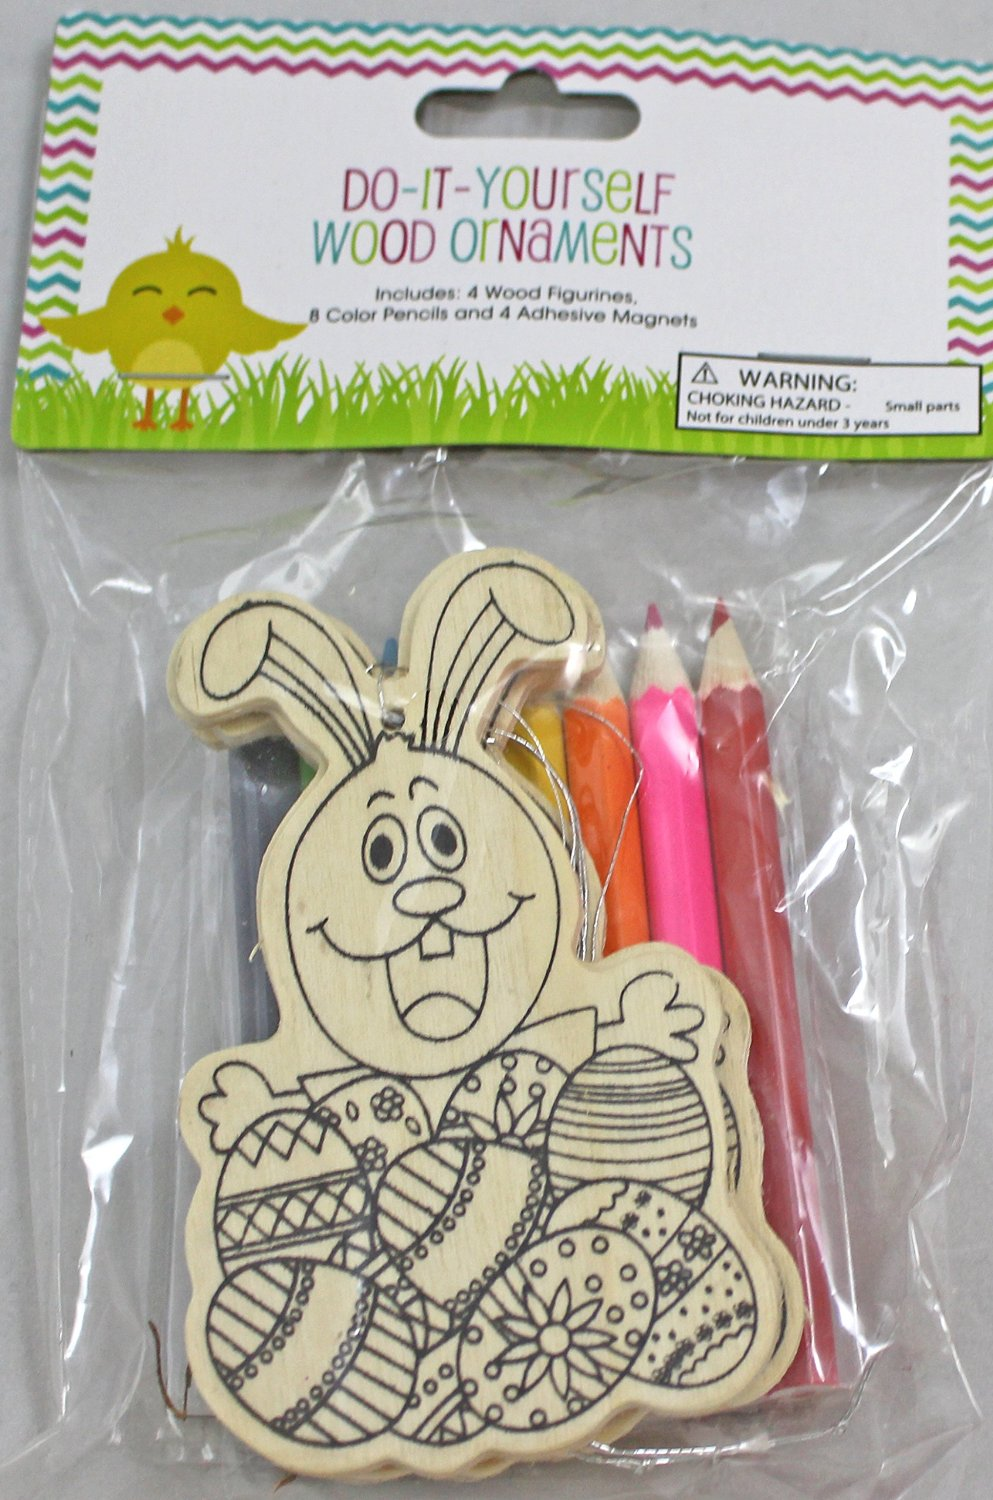 Buy nantucket home do it yourself easter bunny wood ornaments kit nantucket home do it yourself easter bunny wood ornaments kit set of 4 solutioingenieria Gallery